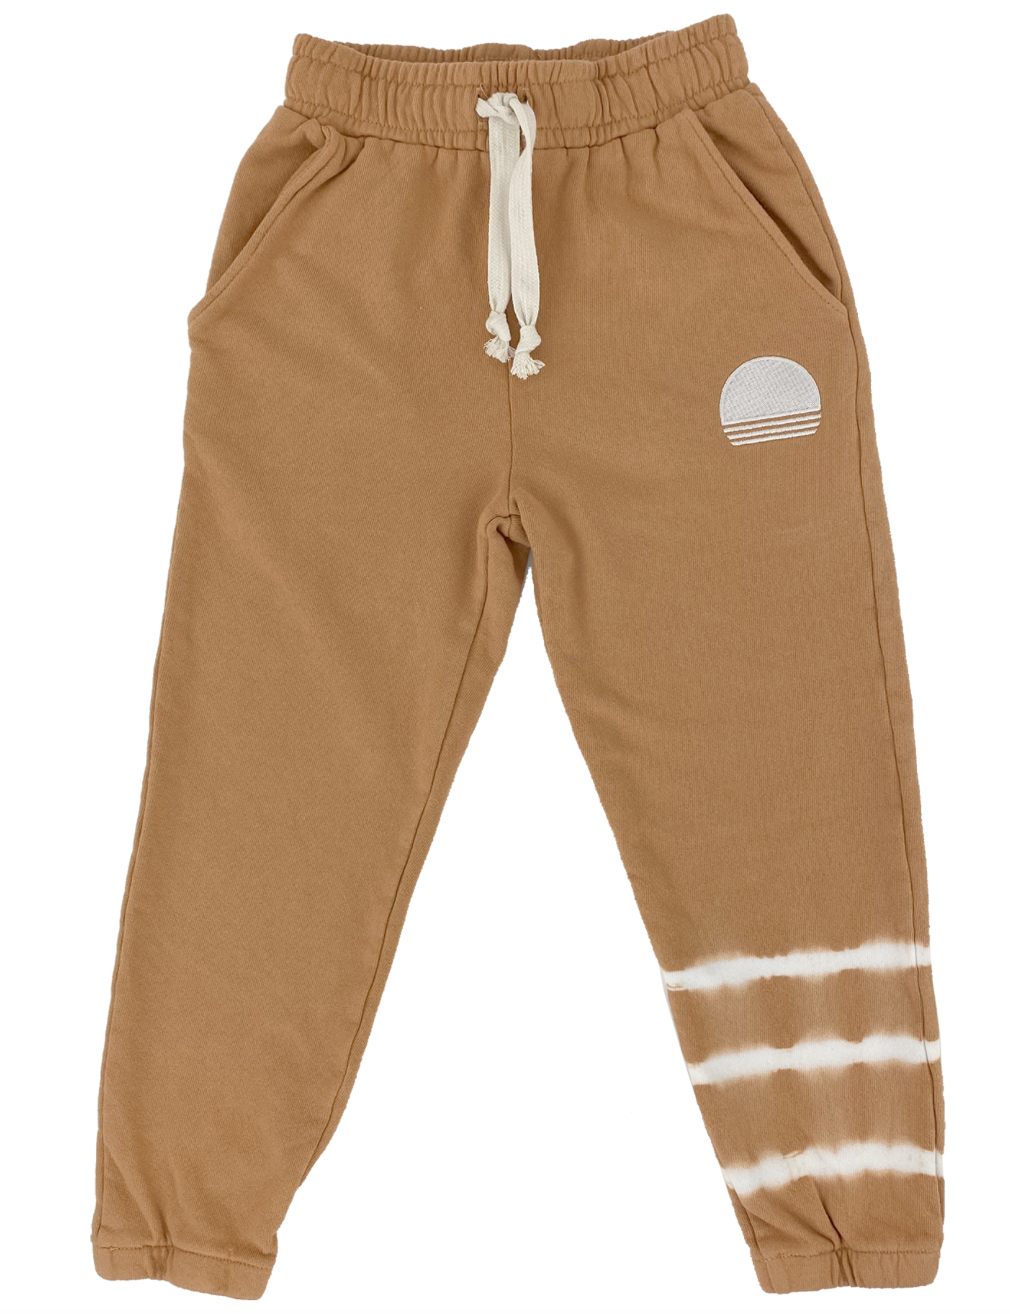 TINY WHALES Red Rock Sweatpants